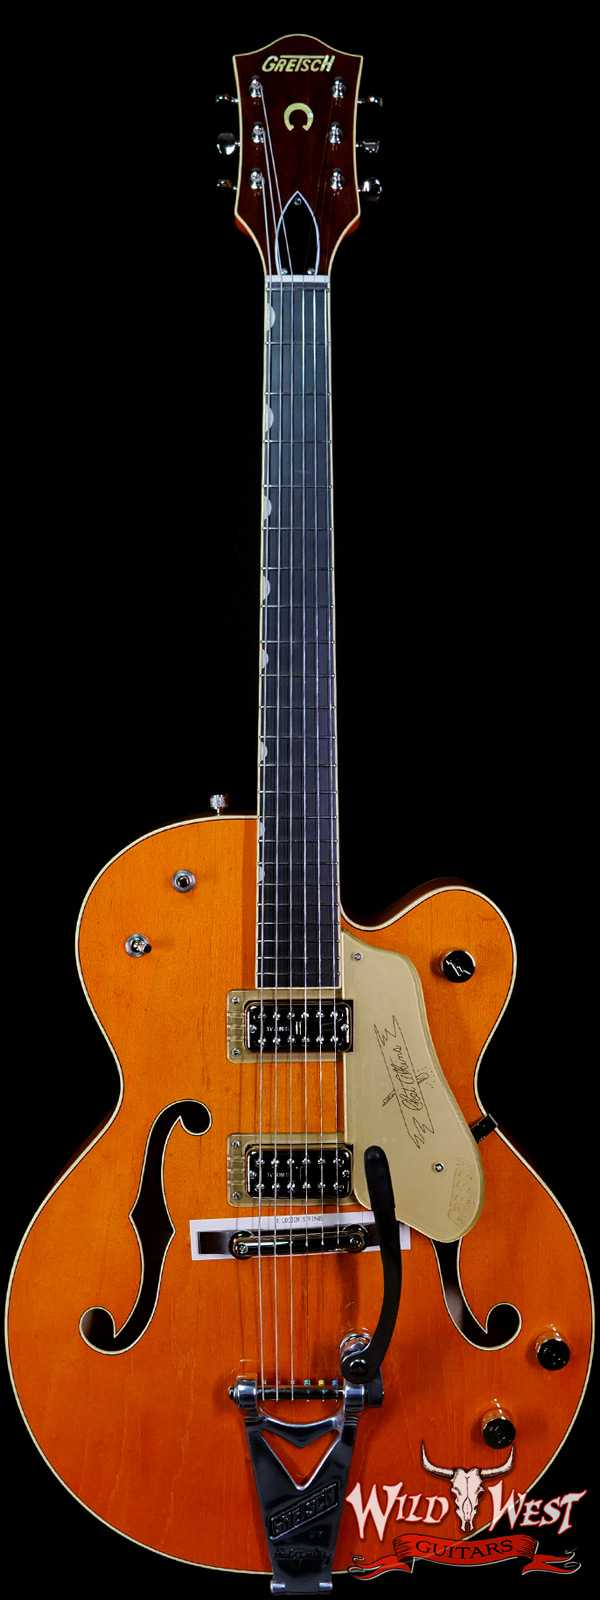 Gretsch G6120T-59 Vintage Select Edition '59 Chet Atkins Hollow Body with Bigsby Vintage Orange Stain Lacquer